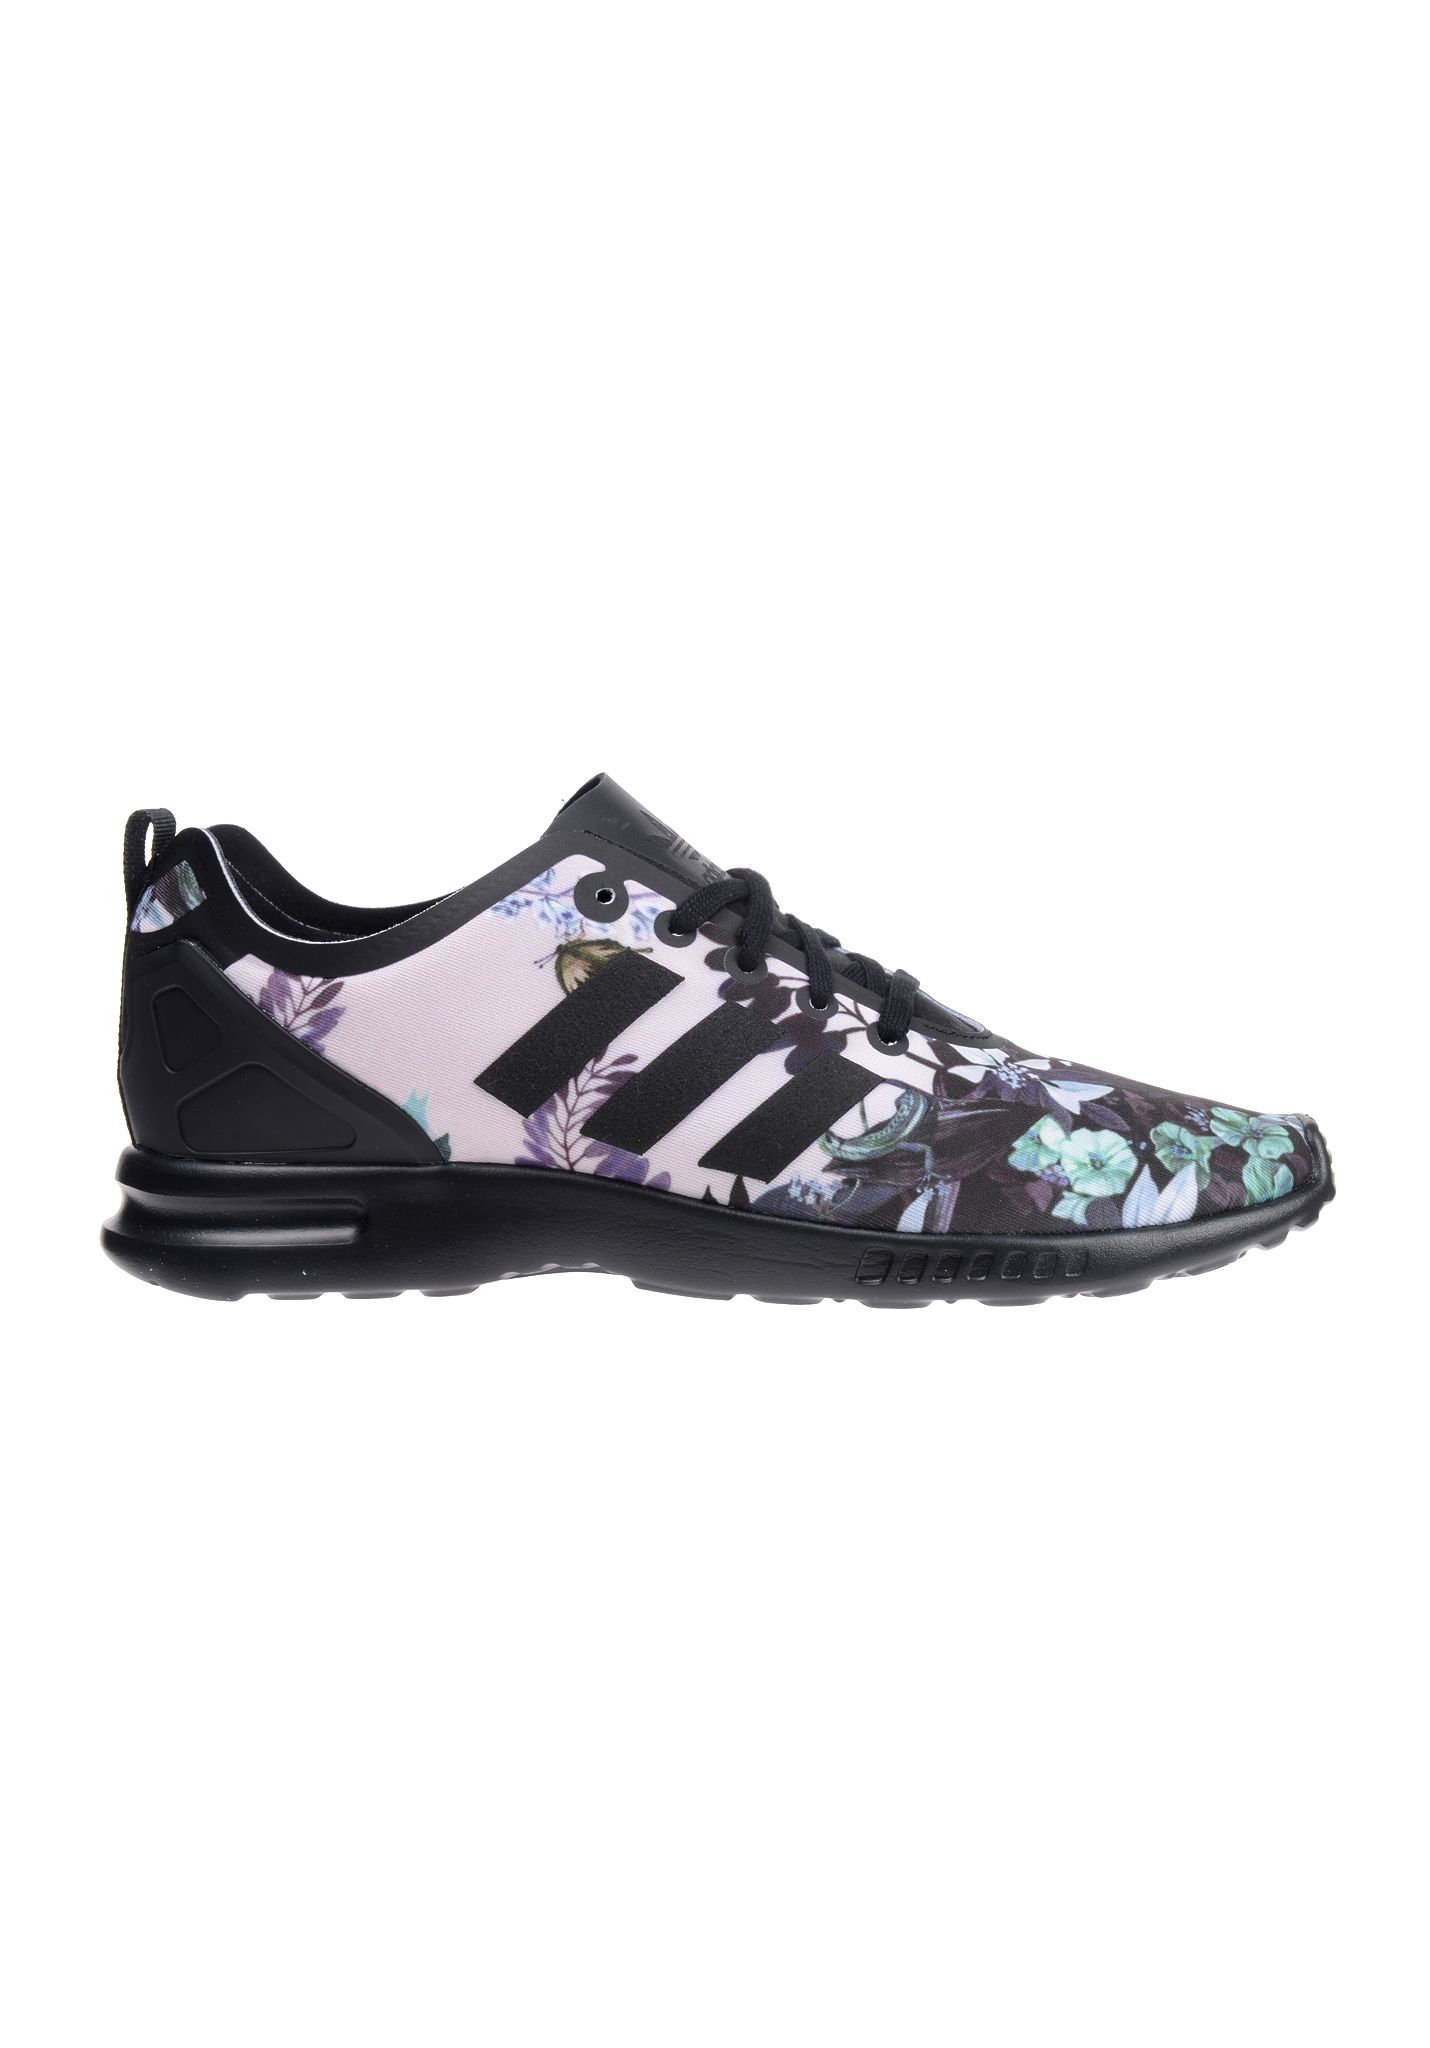 Womens Zx Flux Adv Smooth Low-Top Sneakers adidas 2p3grP6